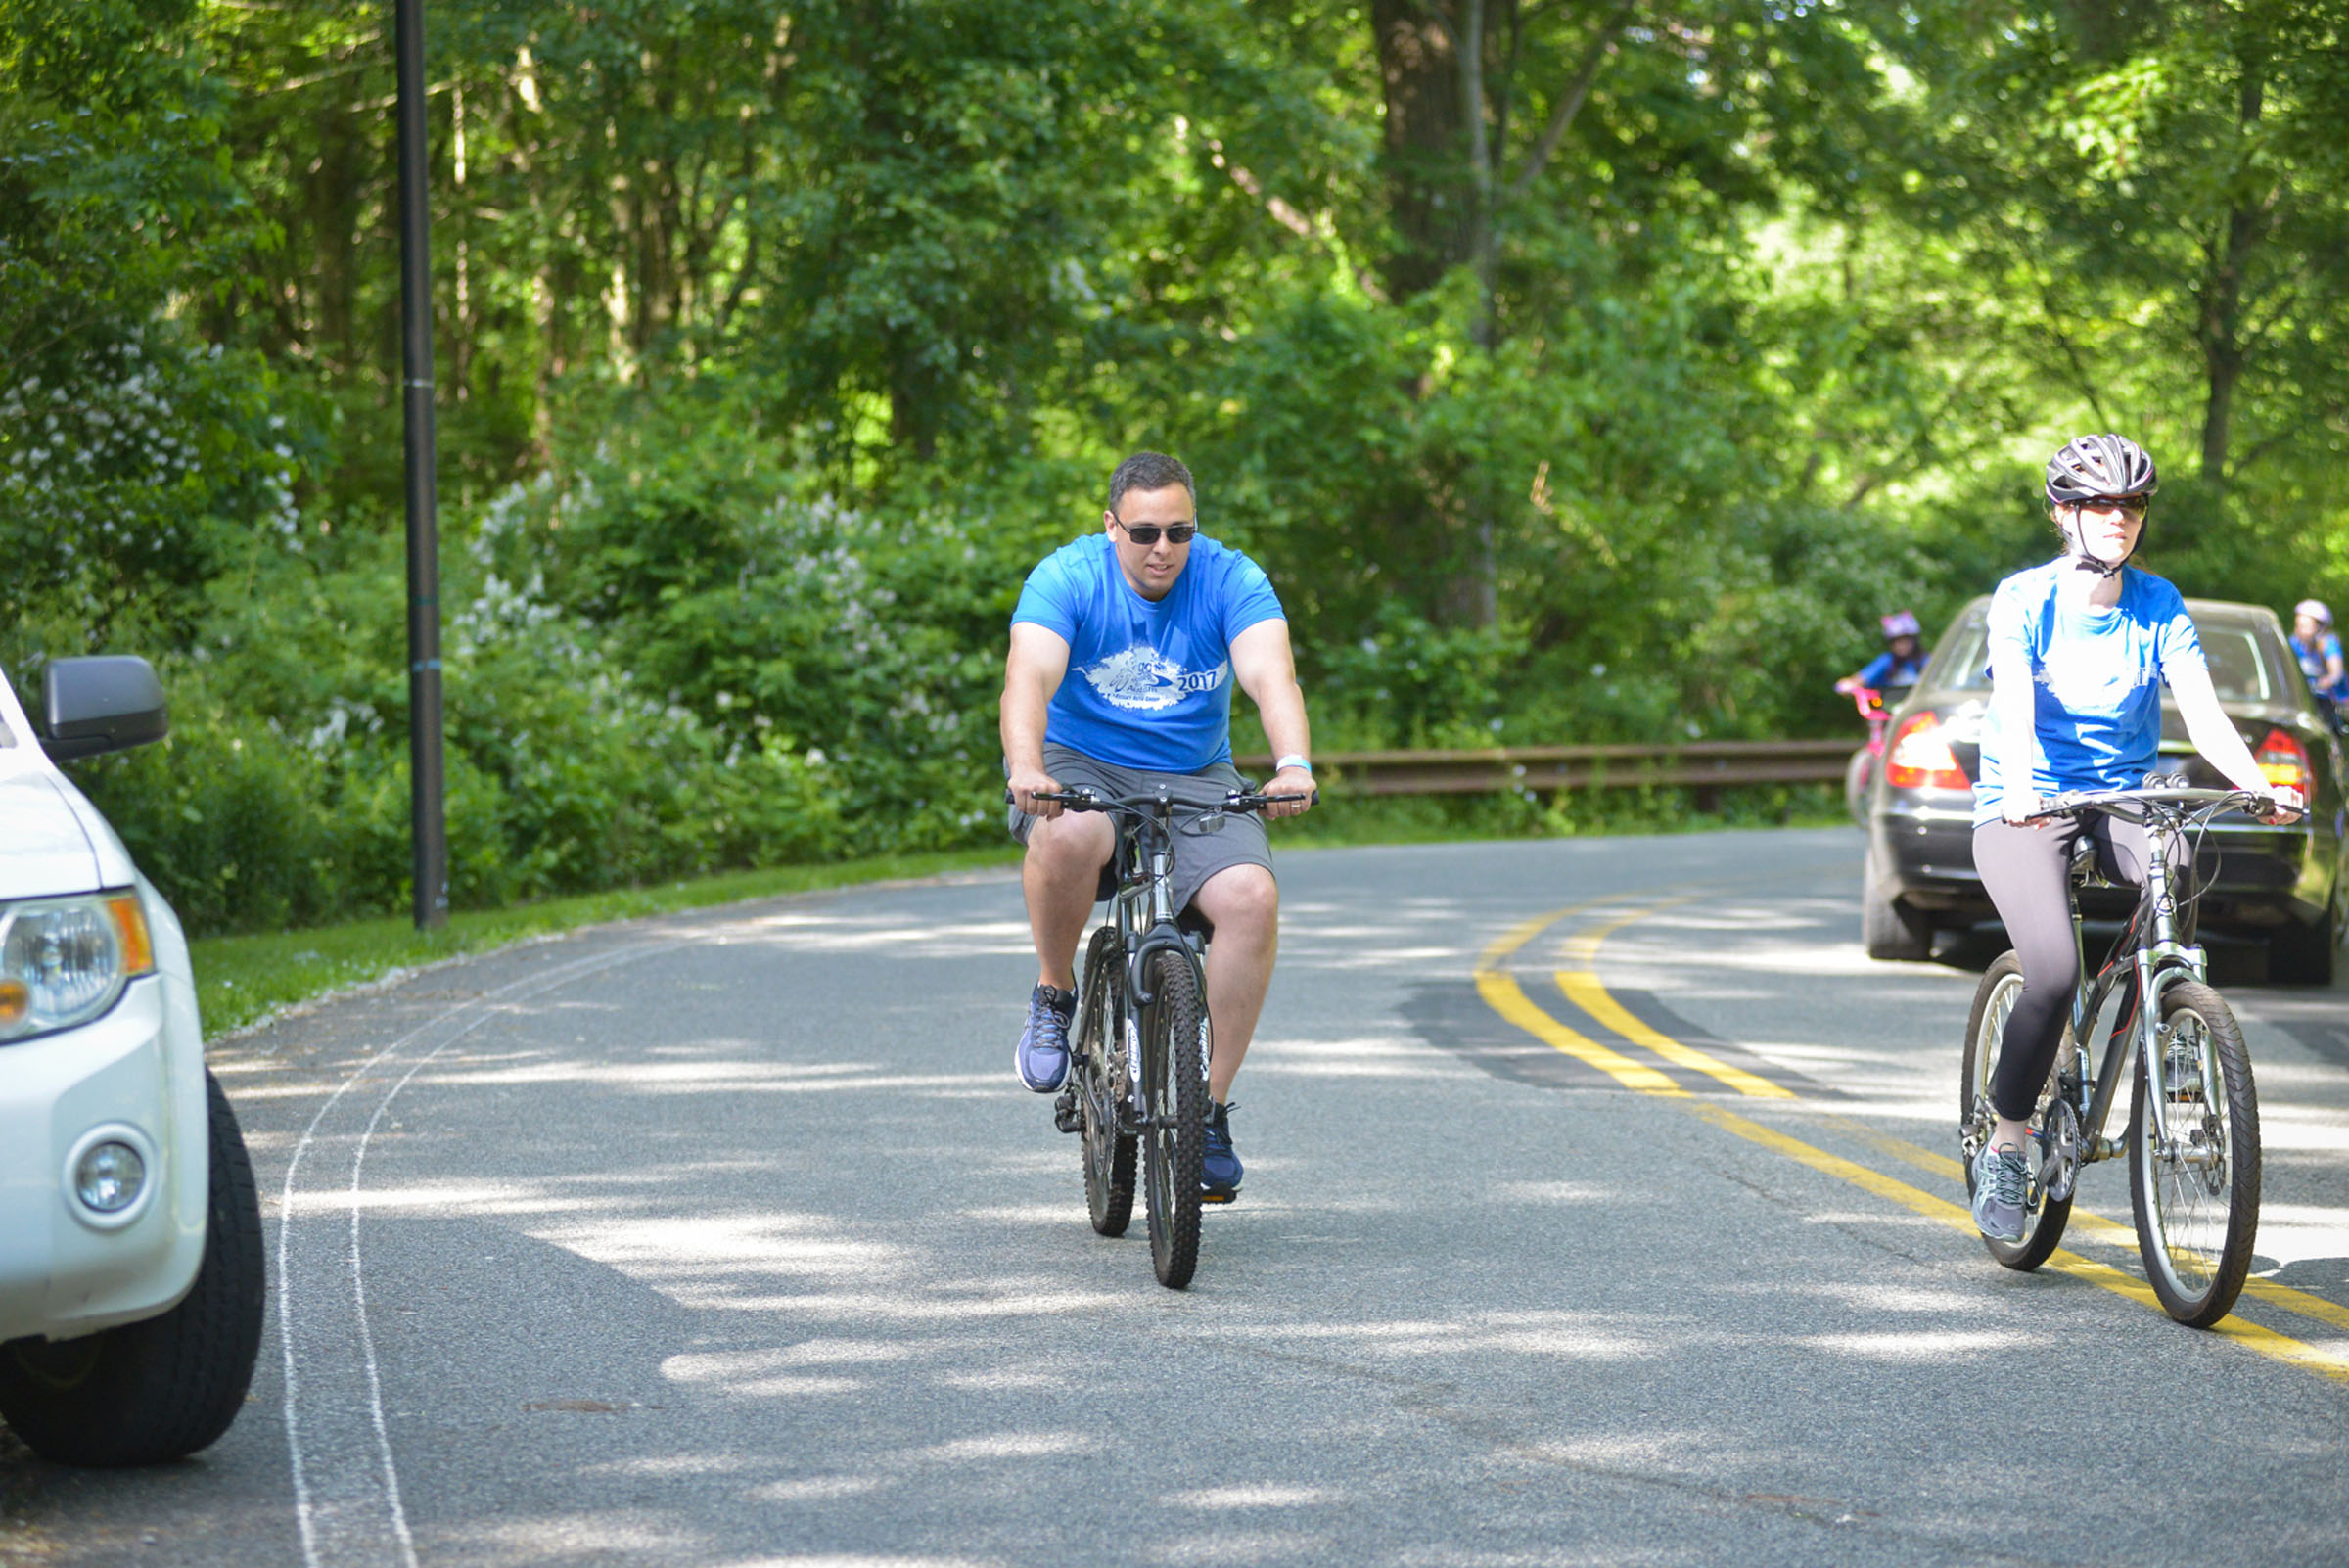 2017-06-04 GTD4A Charity Bike Ride - BCC - Paramus NJ-2027.jpg